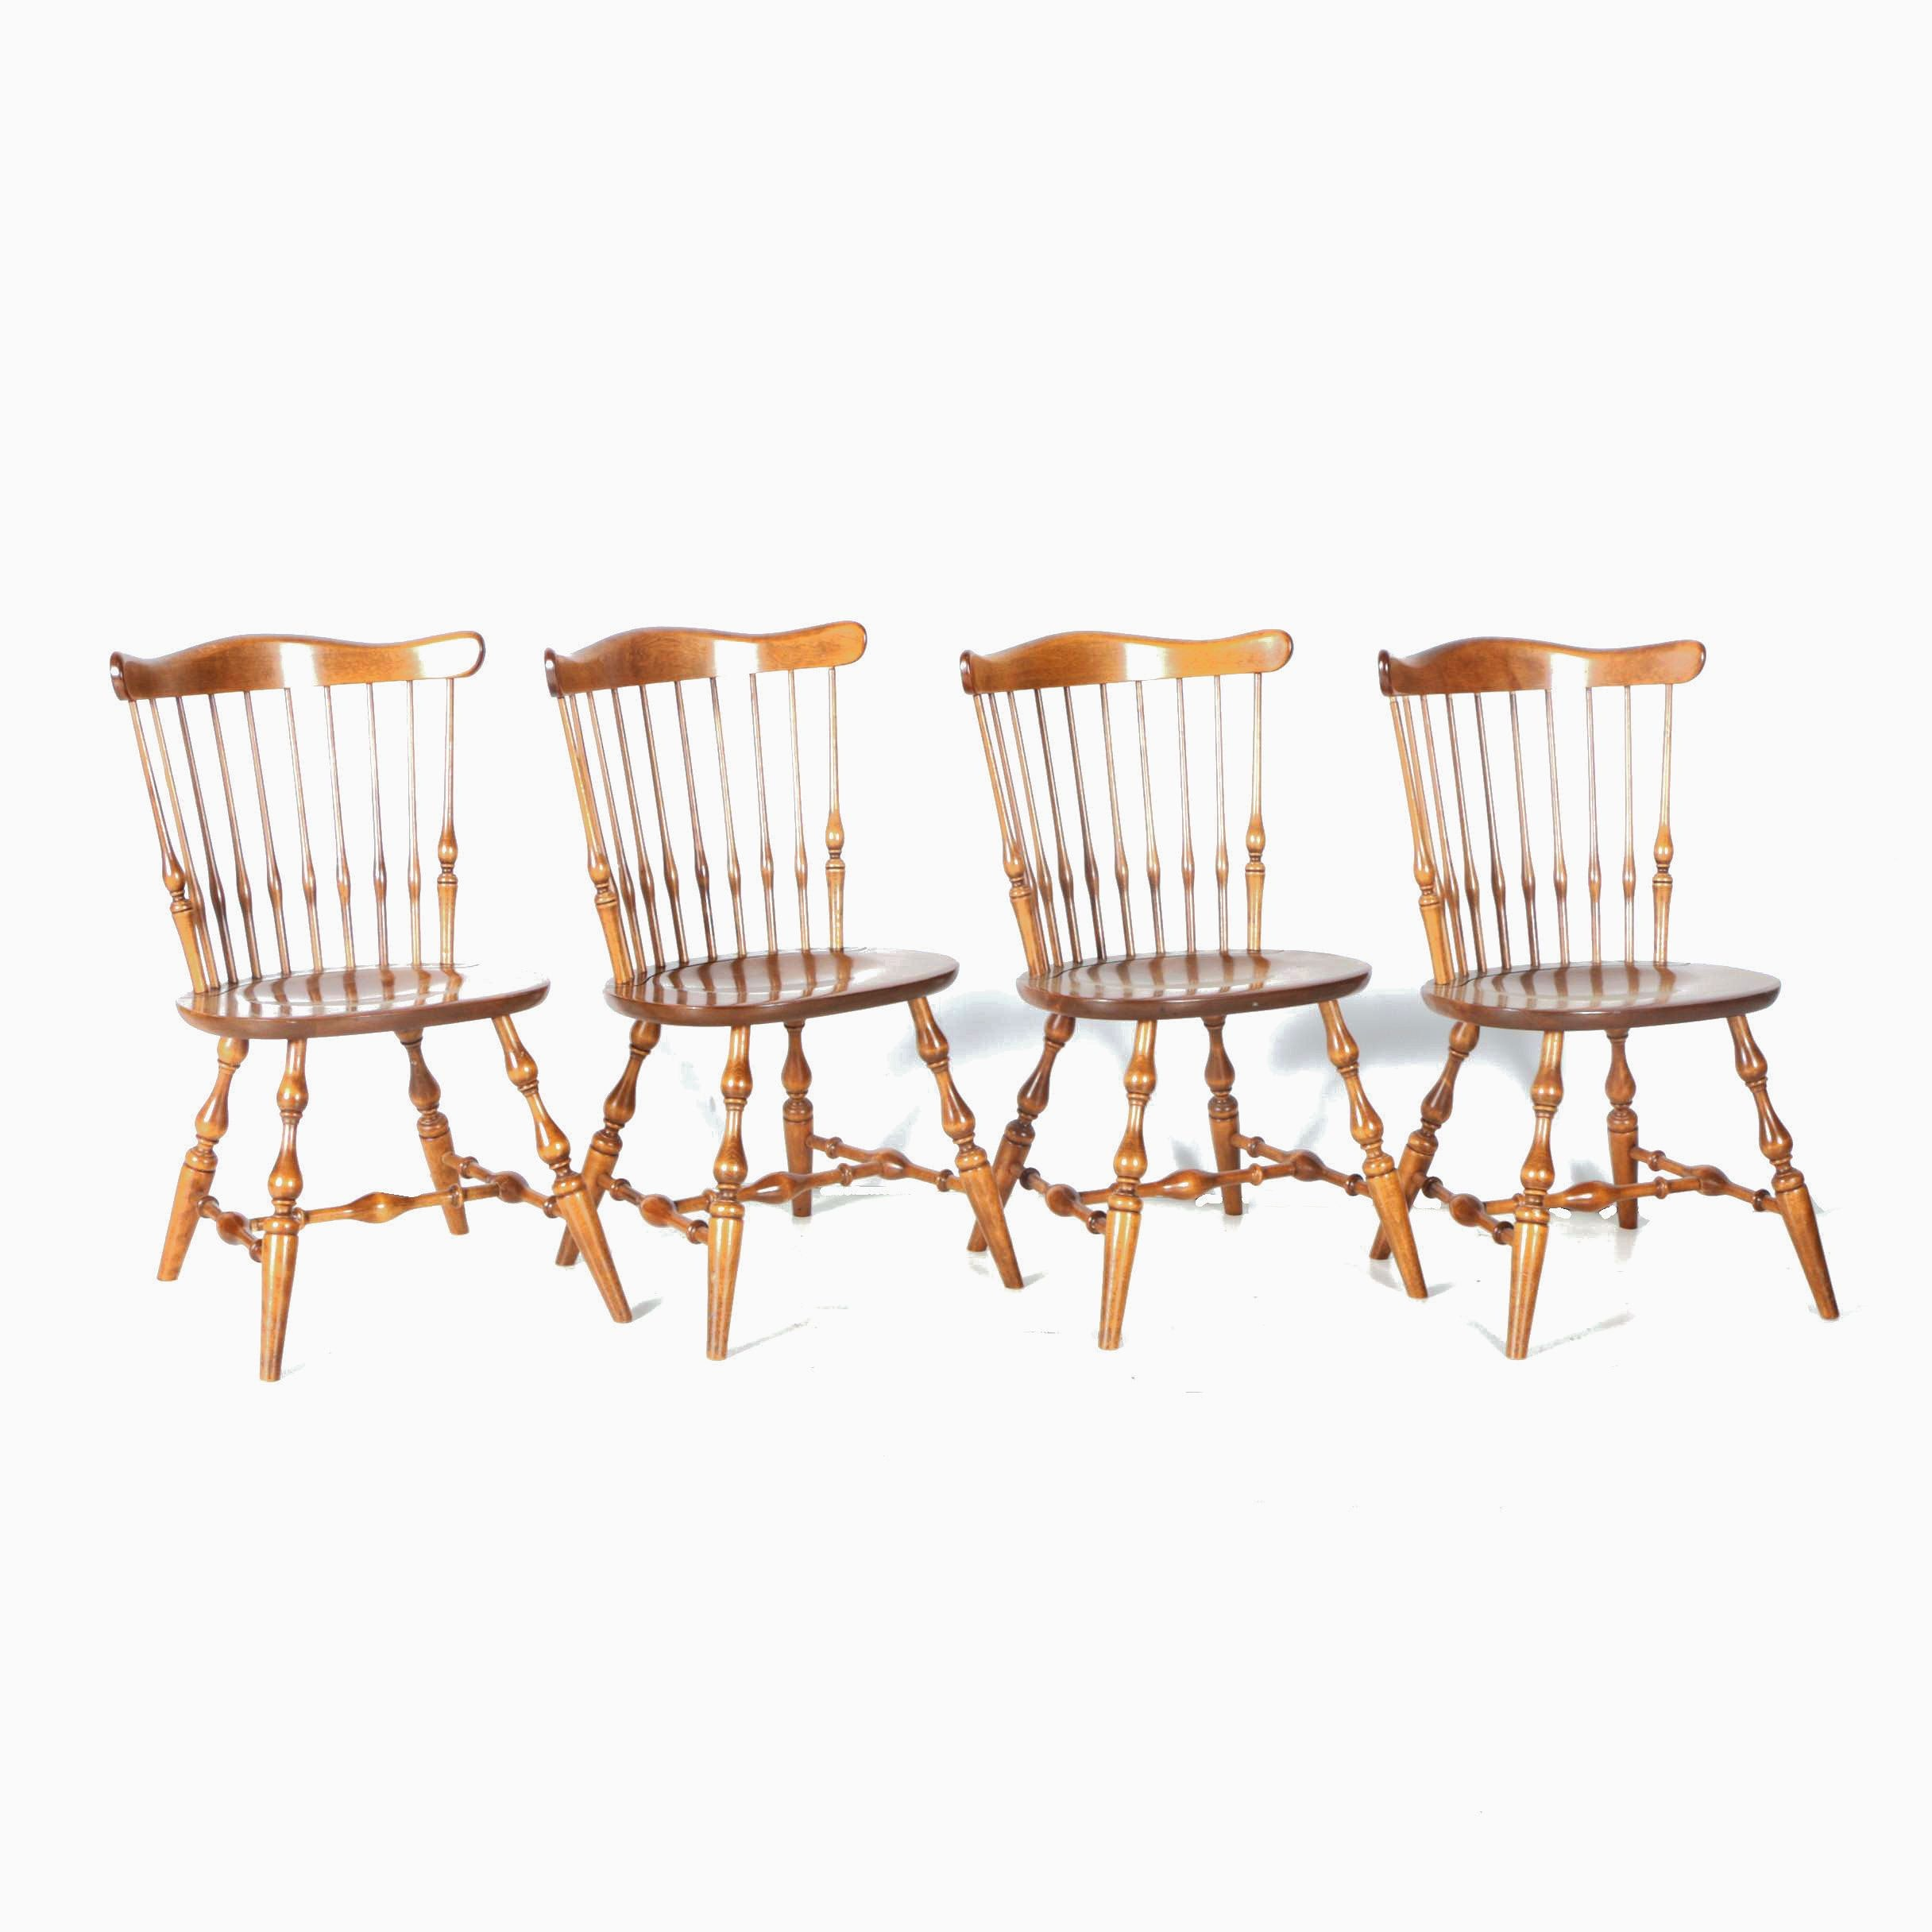 Four Windsor Style Chairs by Ethan Allen